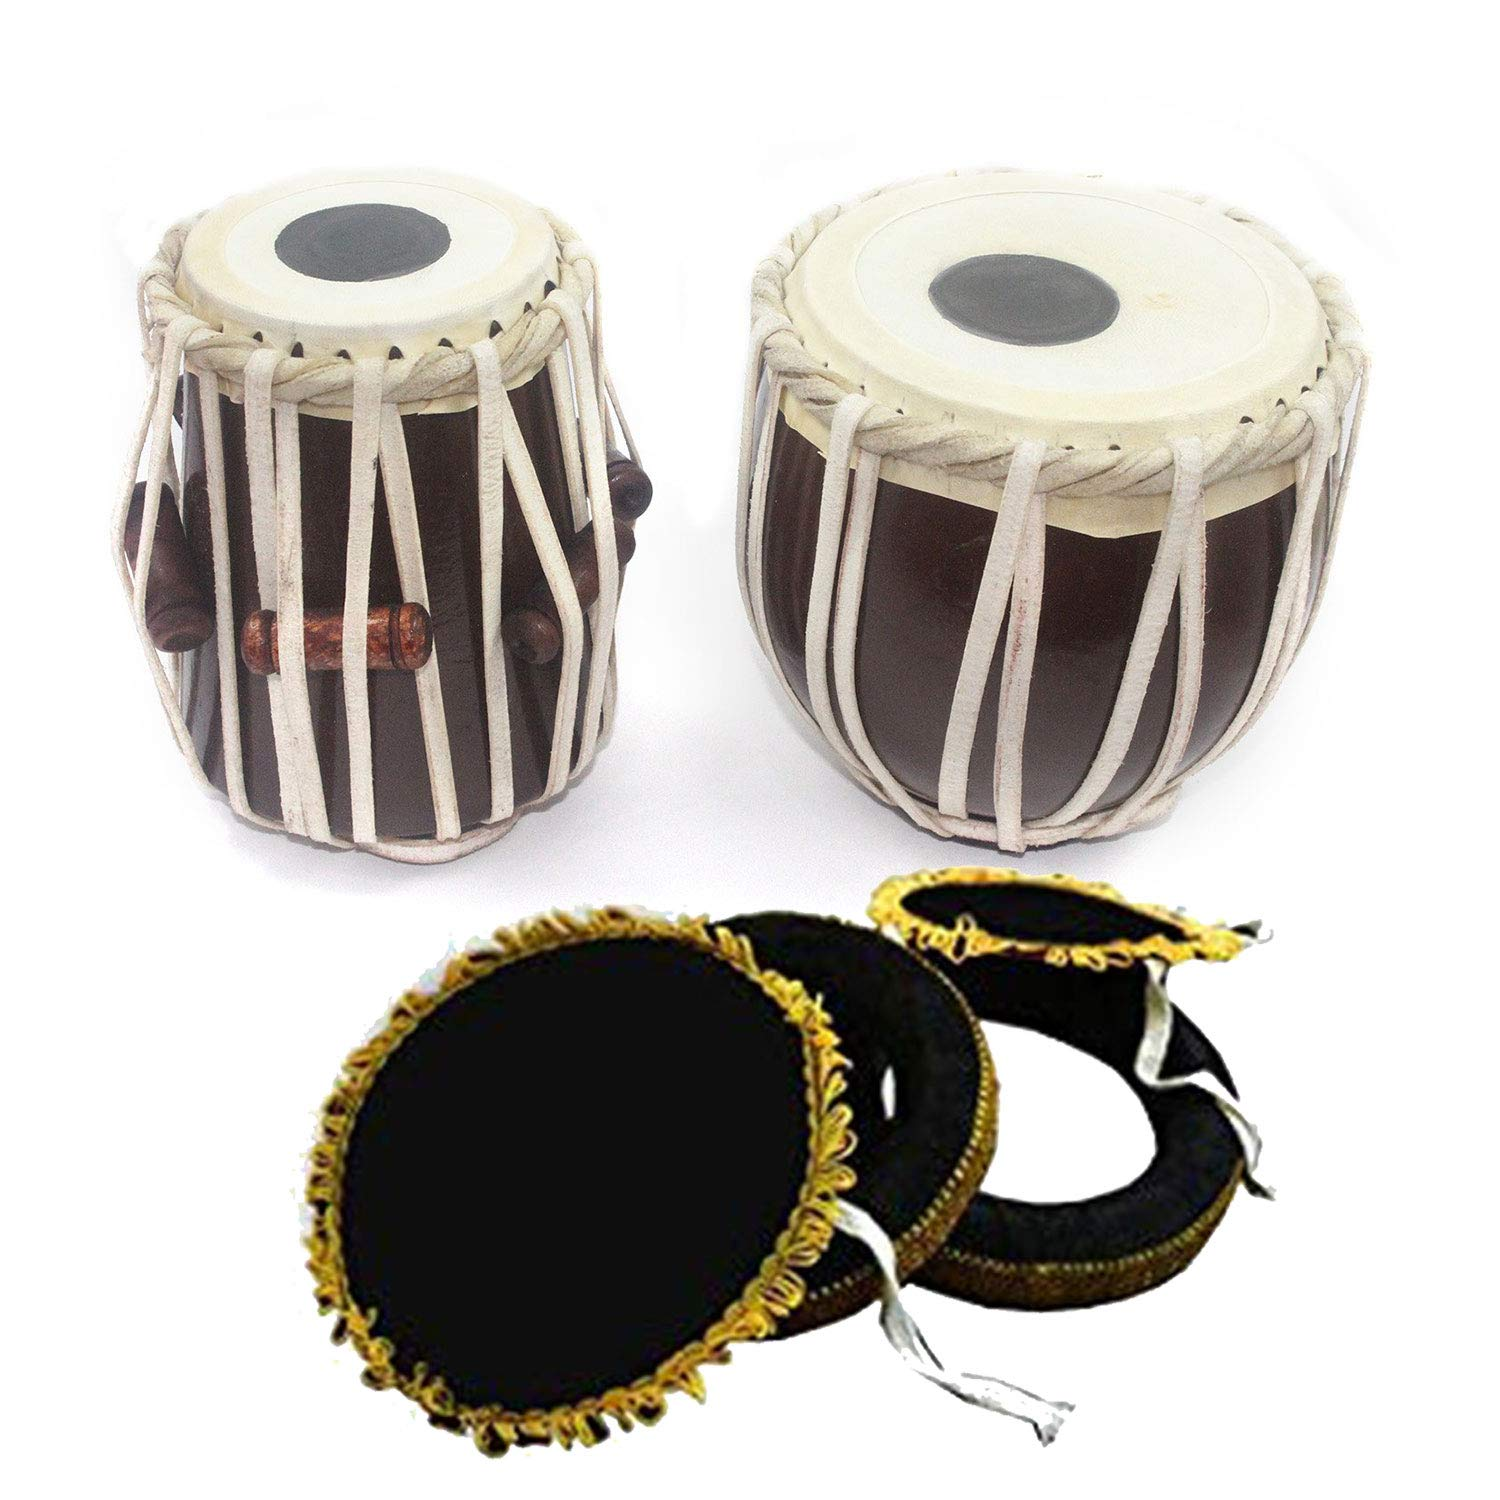 India Meets India Handmade 7'' Inch Tabla Drum Set for Upto 8 Years Kids, Student Tabla Set, Best for Gifting Made by Awarded/Certified Indian Artisians by India Meets India